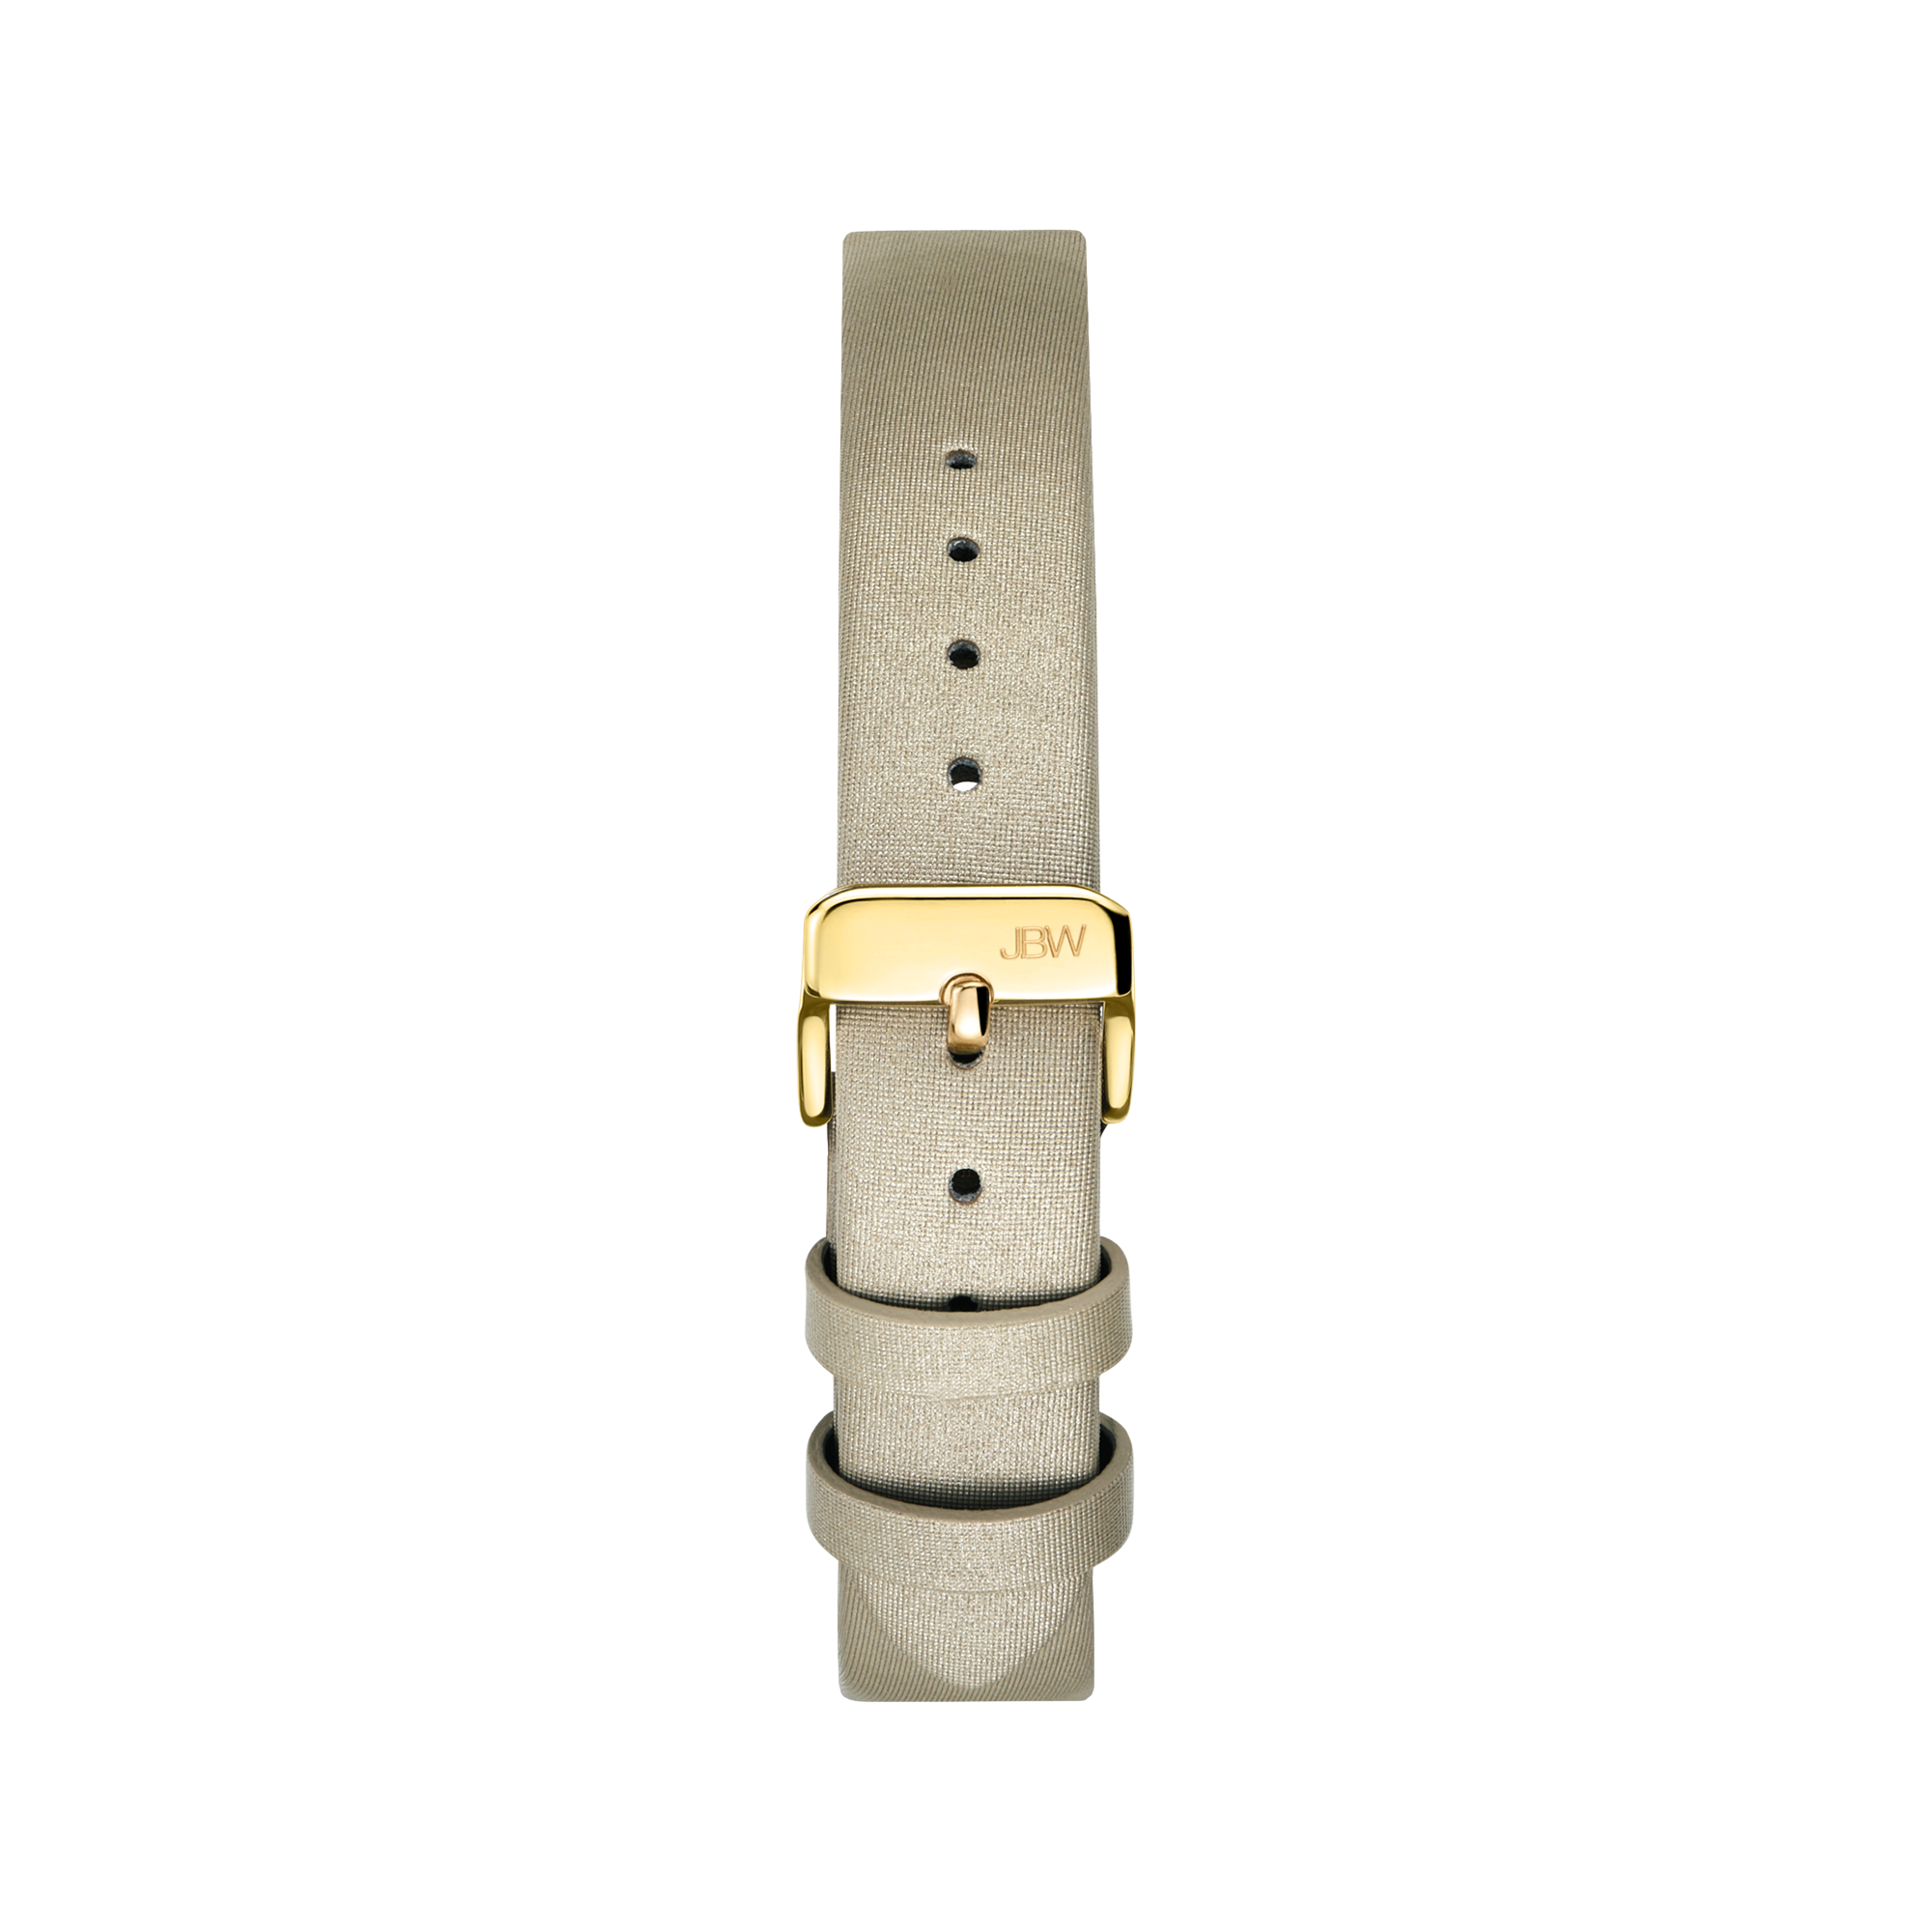 3.1-jbw-plaza-j6366b-gold-diamond-watch-gold-leather-band-set